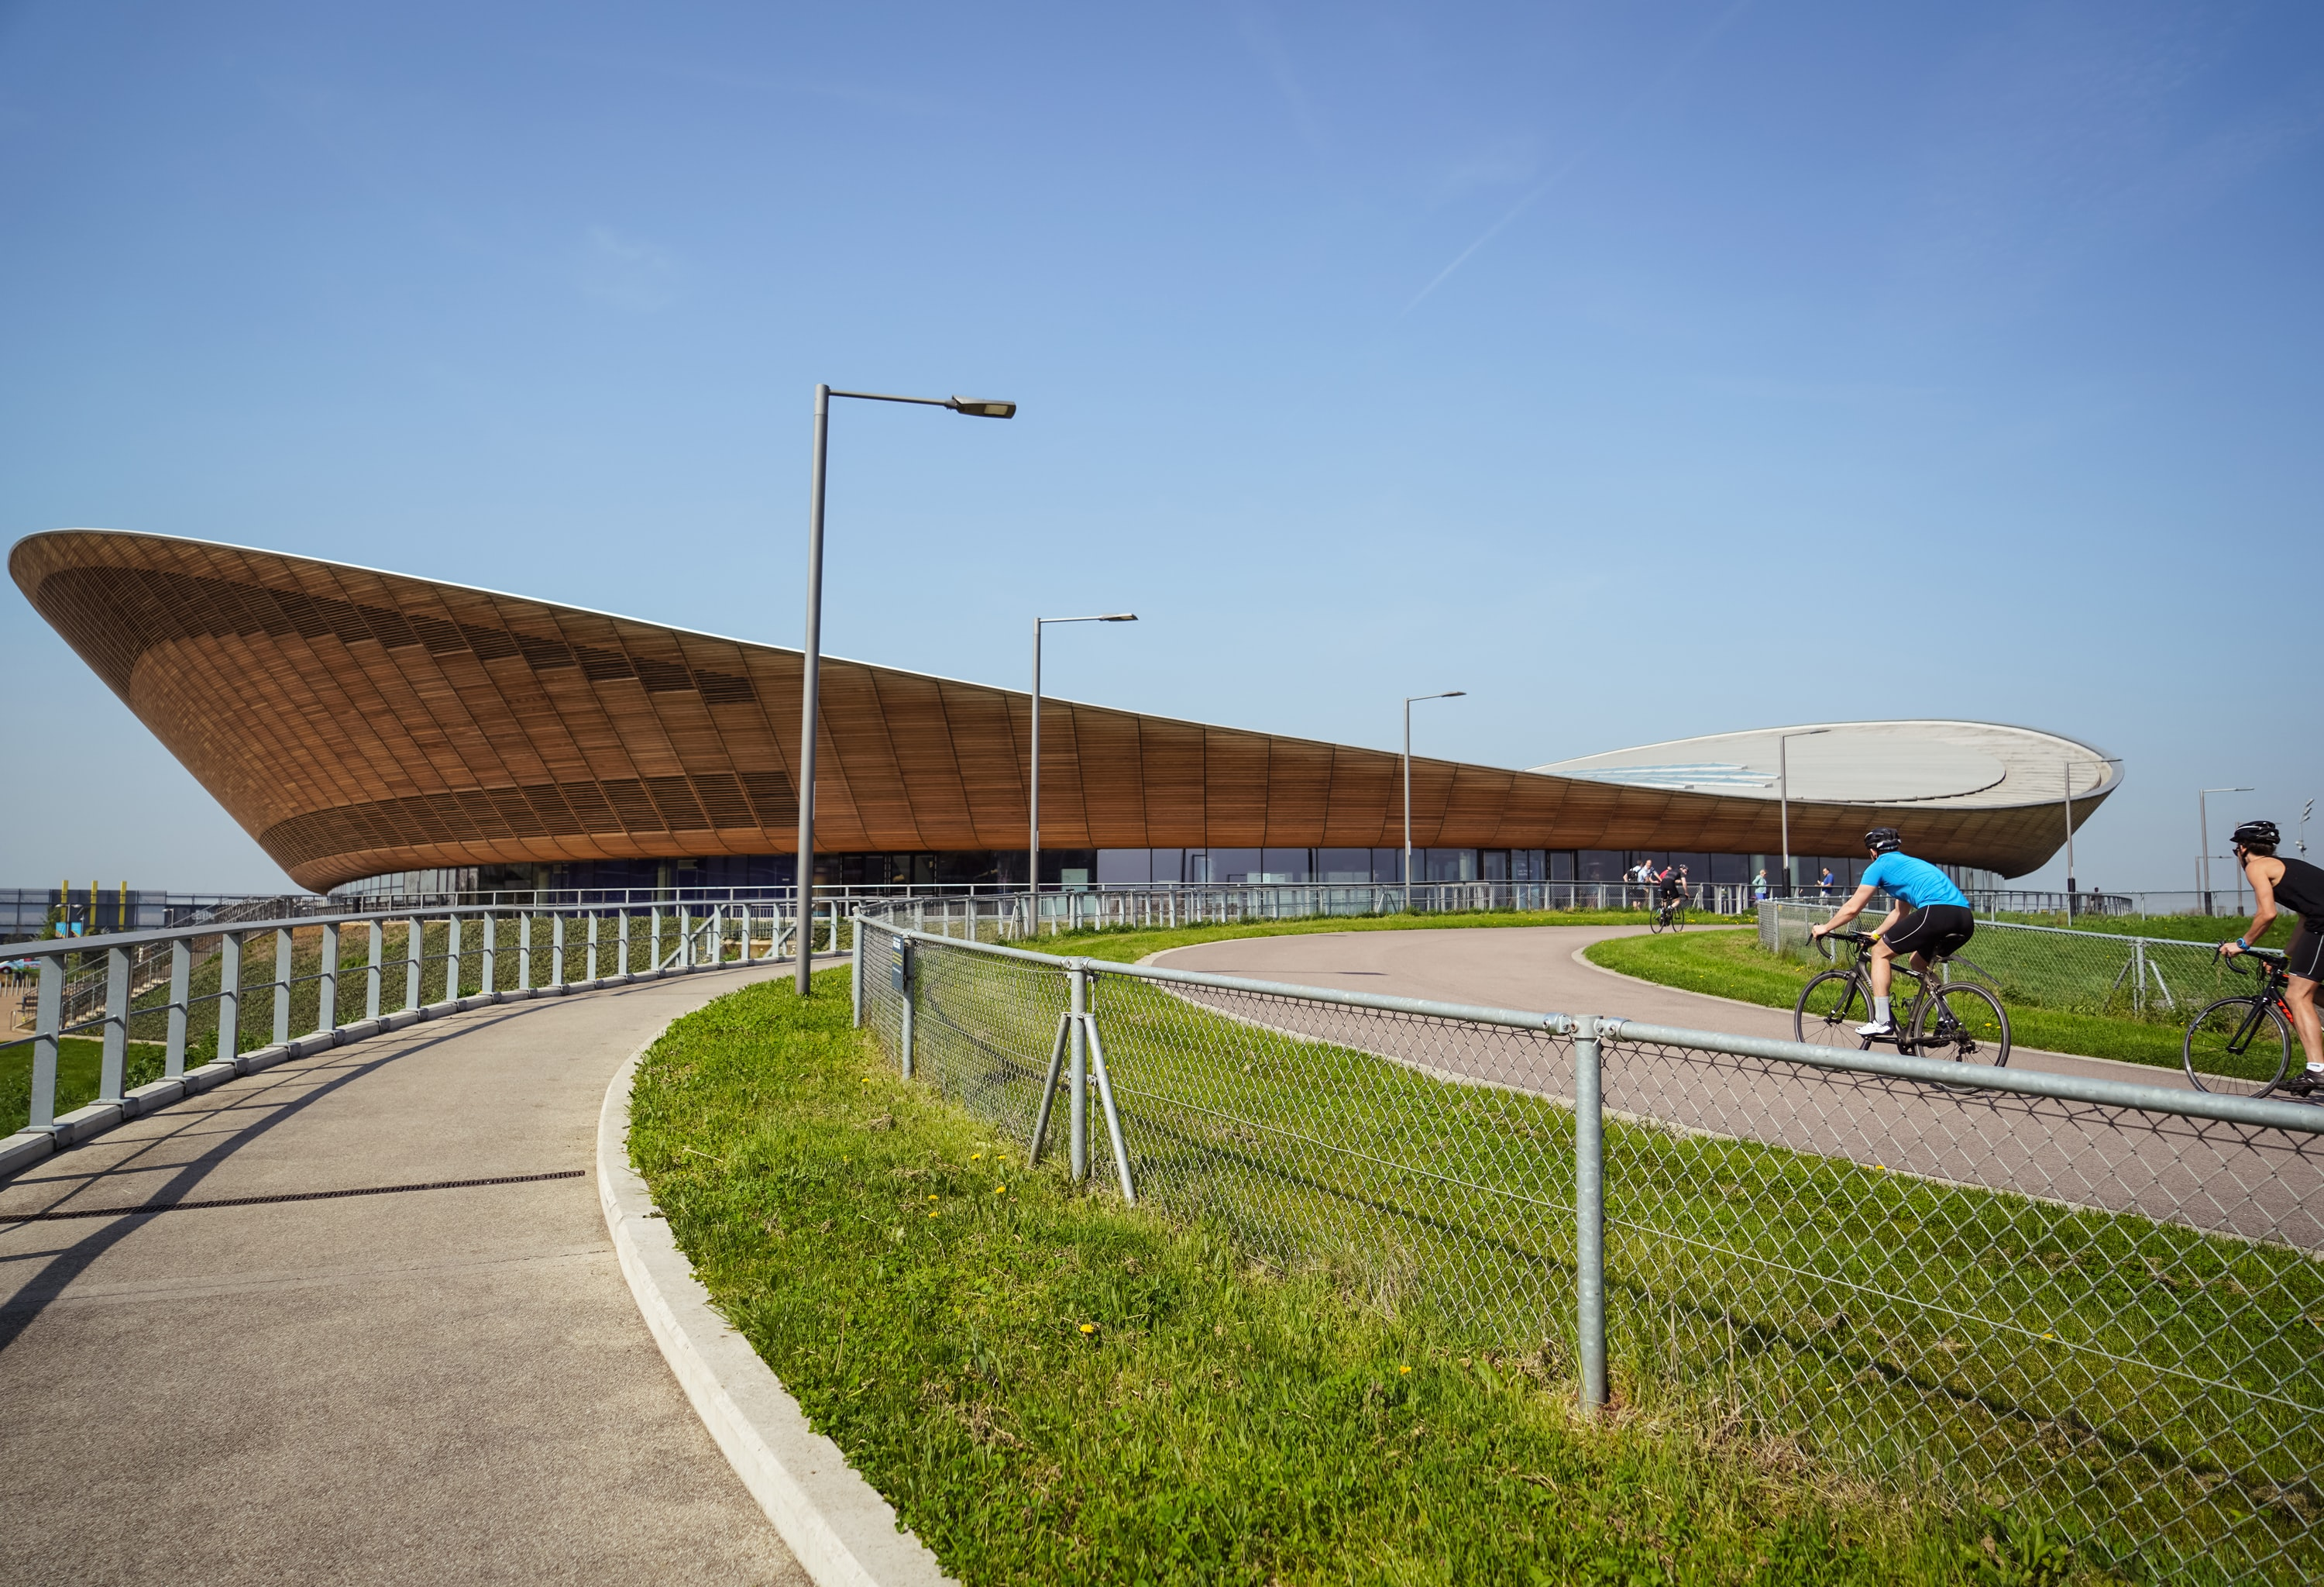 two cyclist on road near stadium at daytime